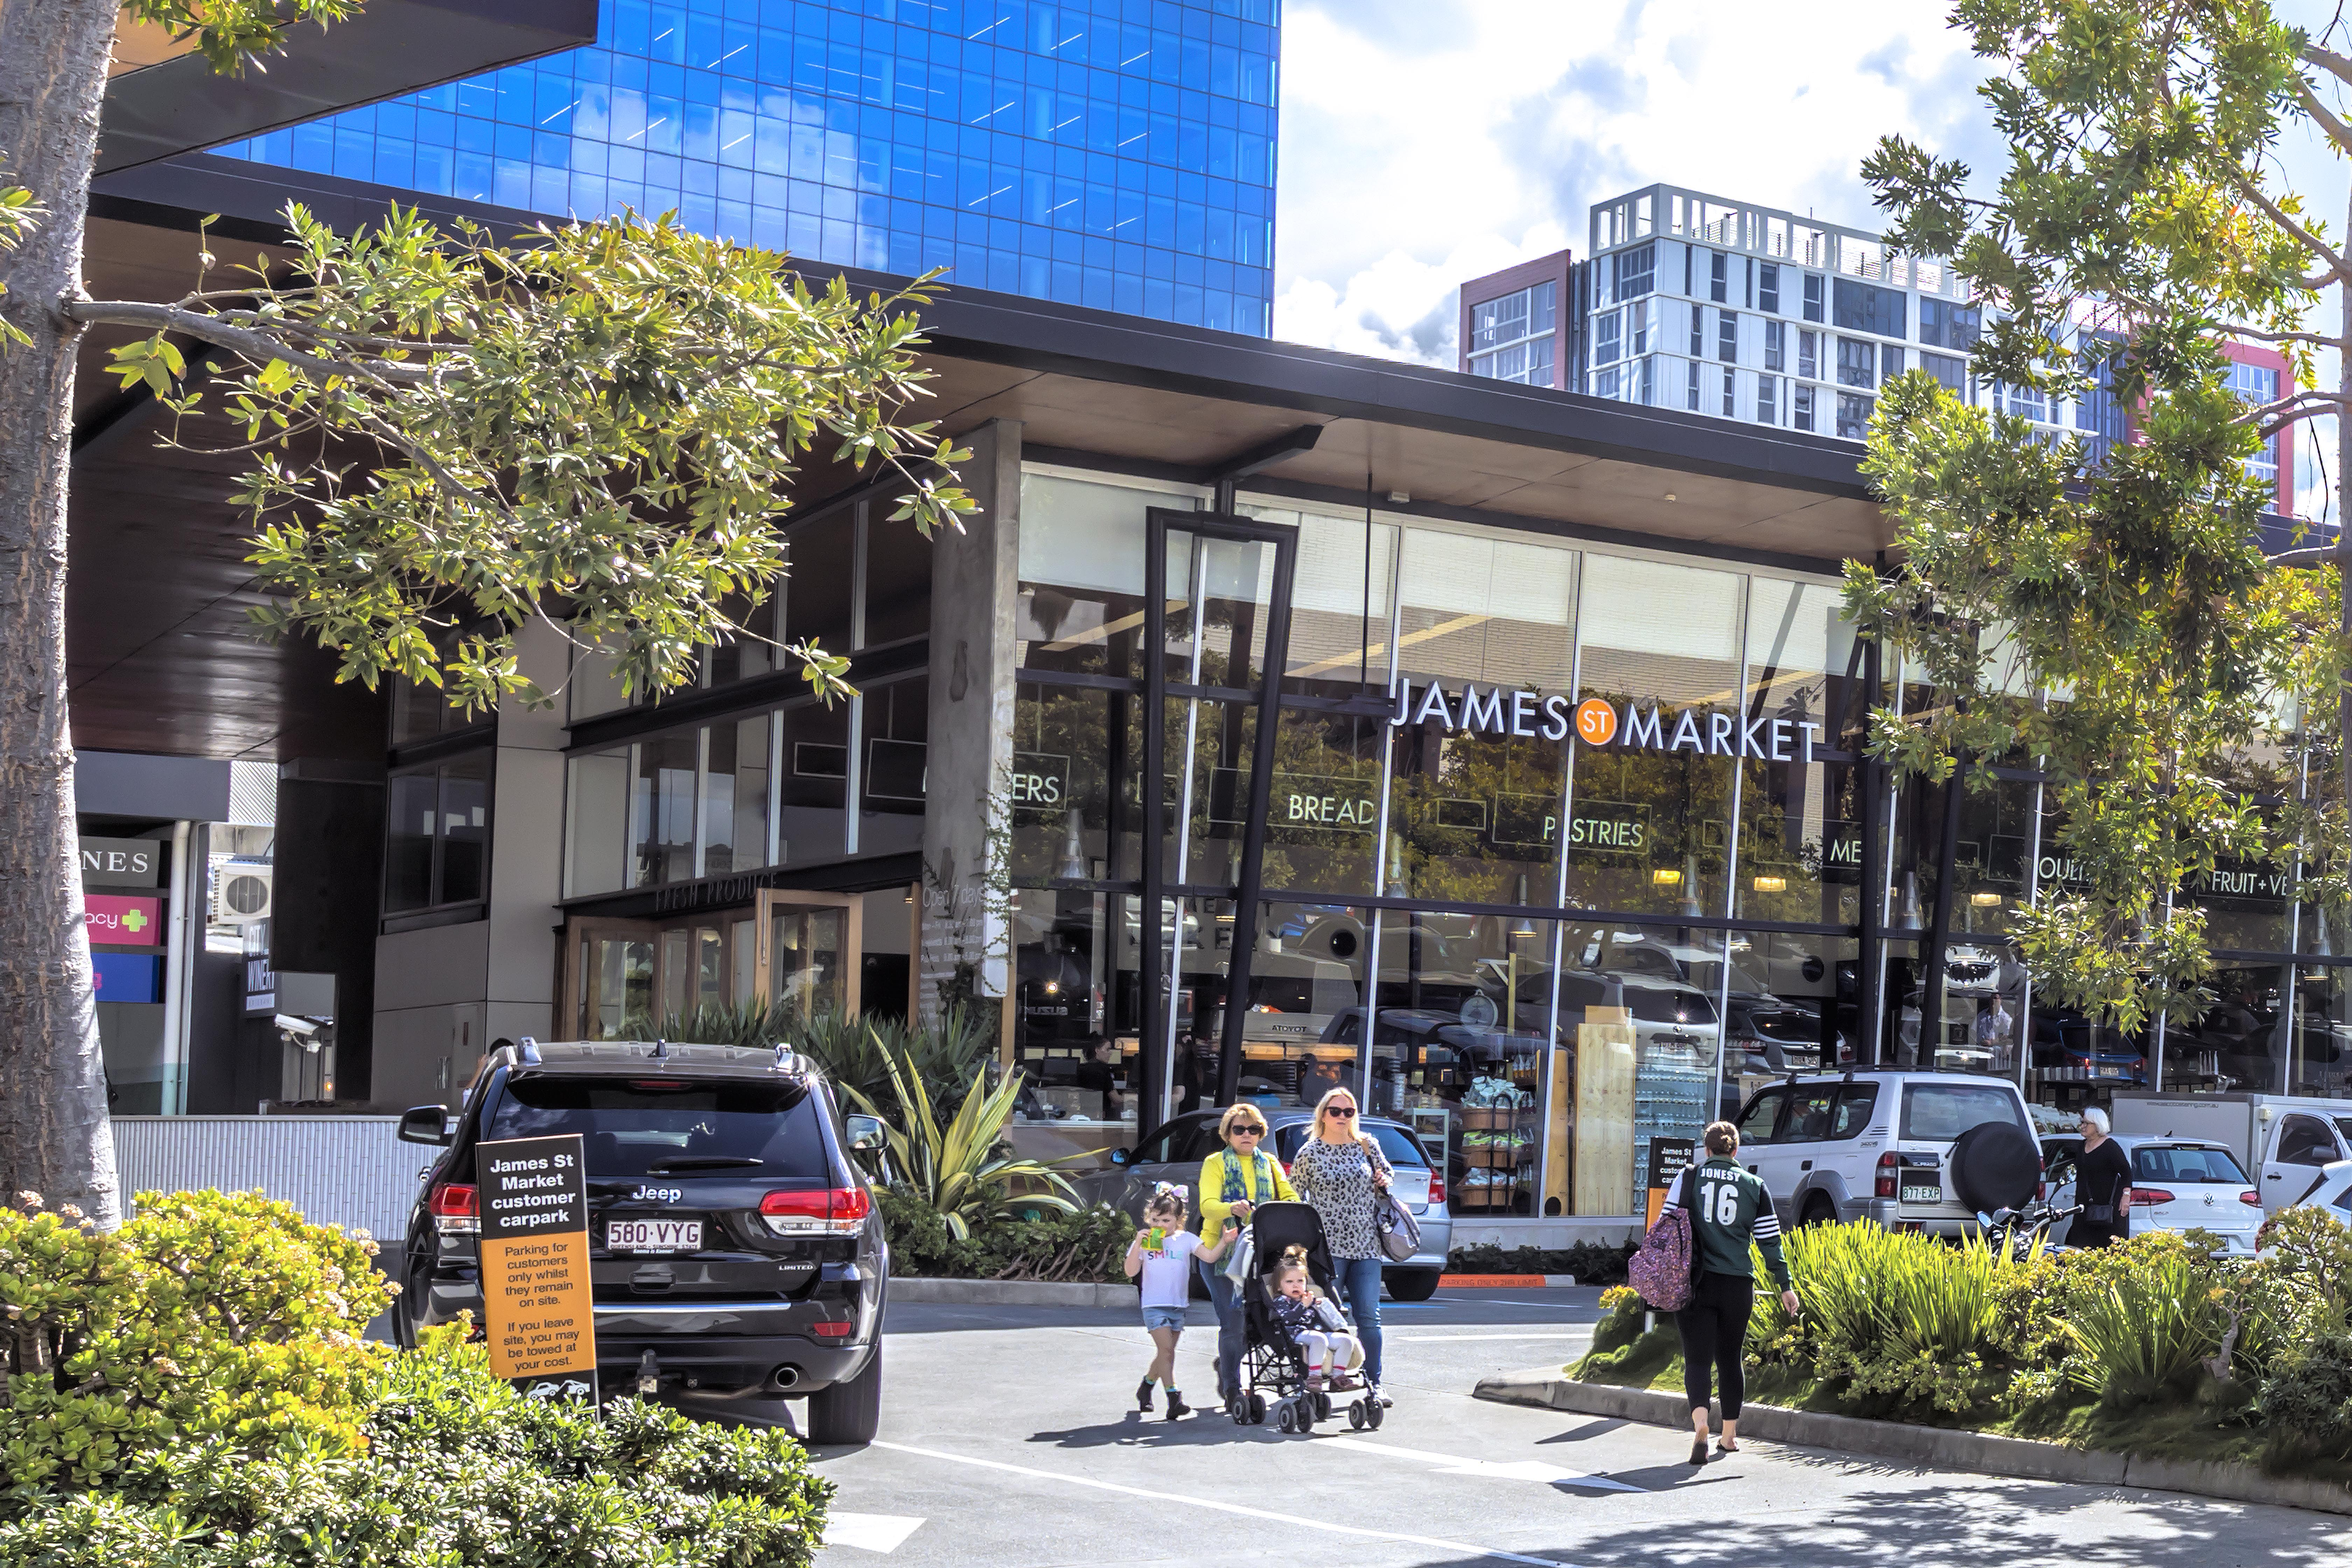 18 Wandoo Street, Fortitude Valley - Commercial retail showroom for lease - Brisbane property Chesters Real Estate agency